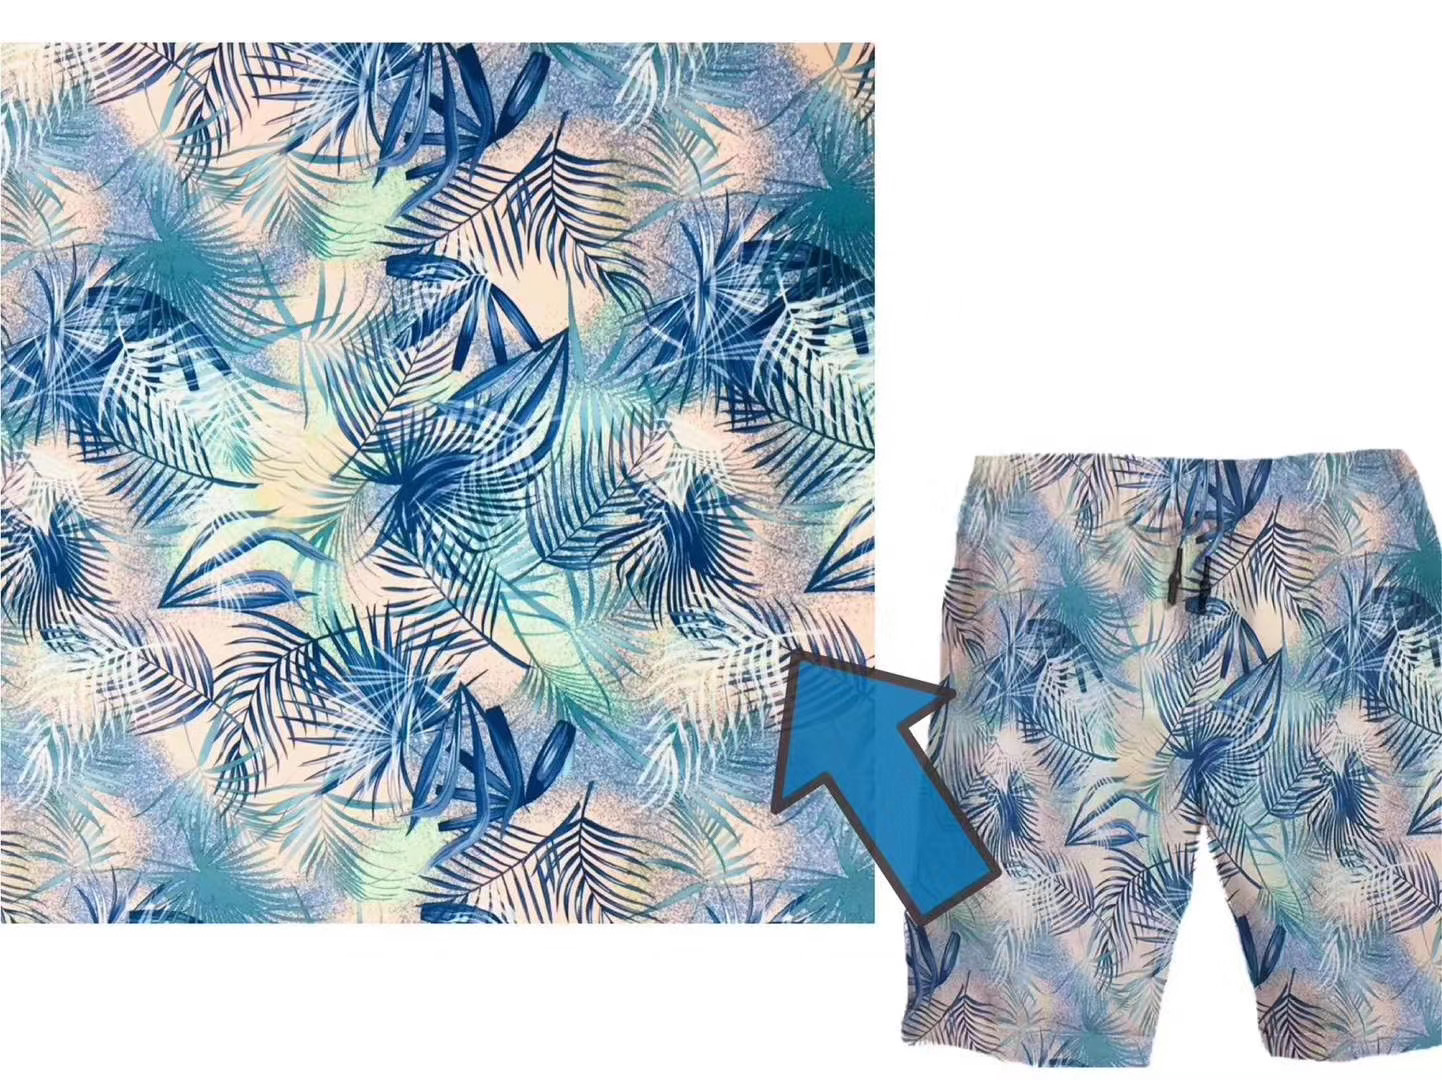 4 way spandex polyester pongee fabric with digital printed fabric and sun protection for trail running